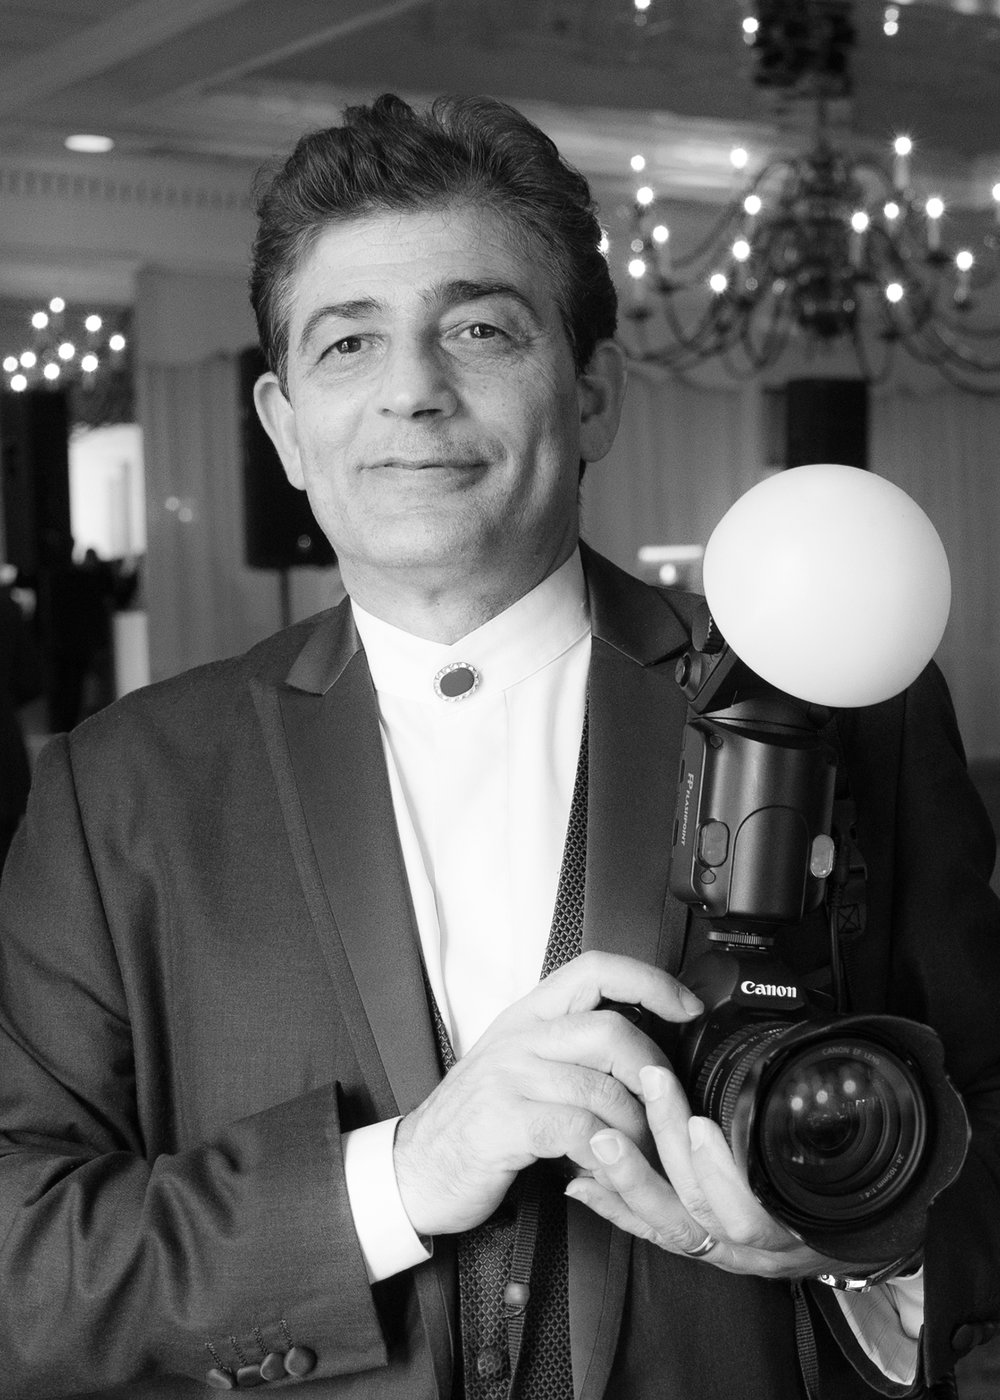 About The Owner: - Jamal started his career as a photojournalist and documentary filmmaker. He has won international awards for my documentary films and photos. He has been capturing wedding photography for many years. He enjoys taking photos that capture the right moment for a lifetime of shared memories.He is blessed to have photography as a career. He really enjoys being appreciated by his clients and the most common compliment he gets is that he is patient and professional.He enjoys gardening, fishing, watching international movies, going to the beach, and cooking in his free time.